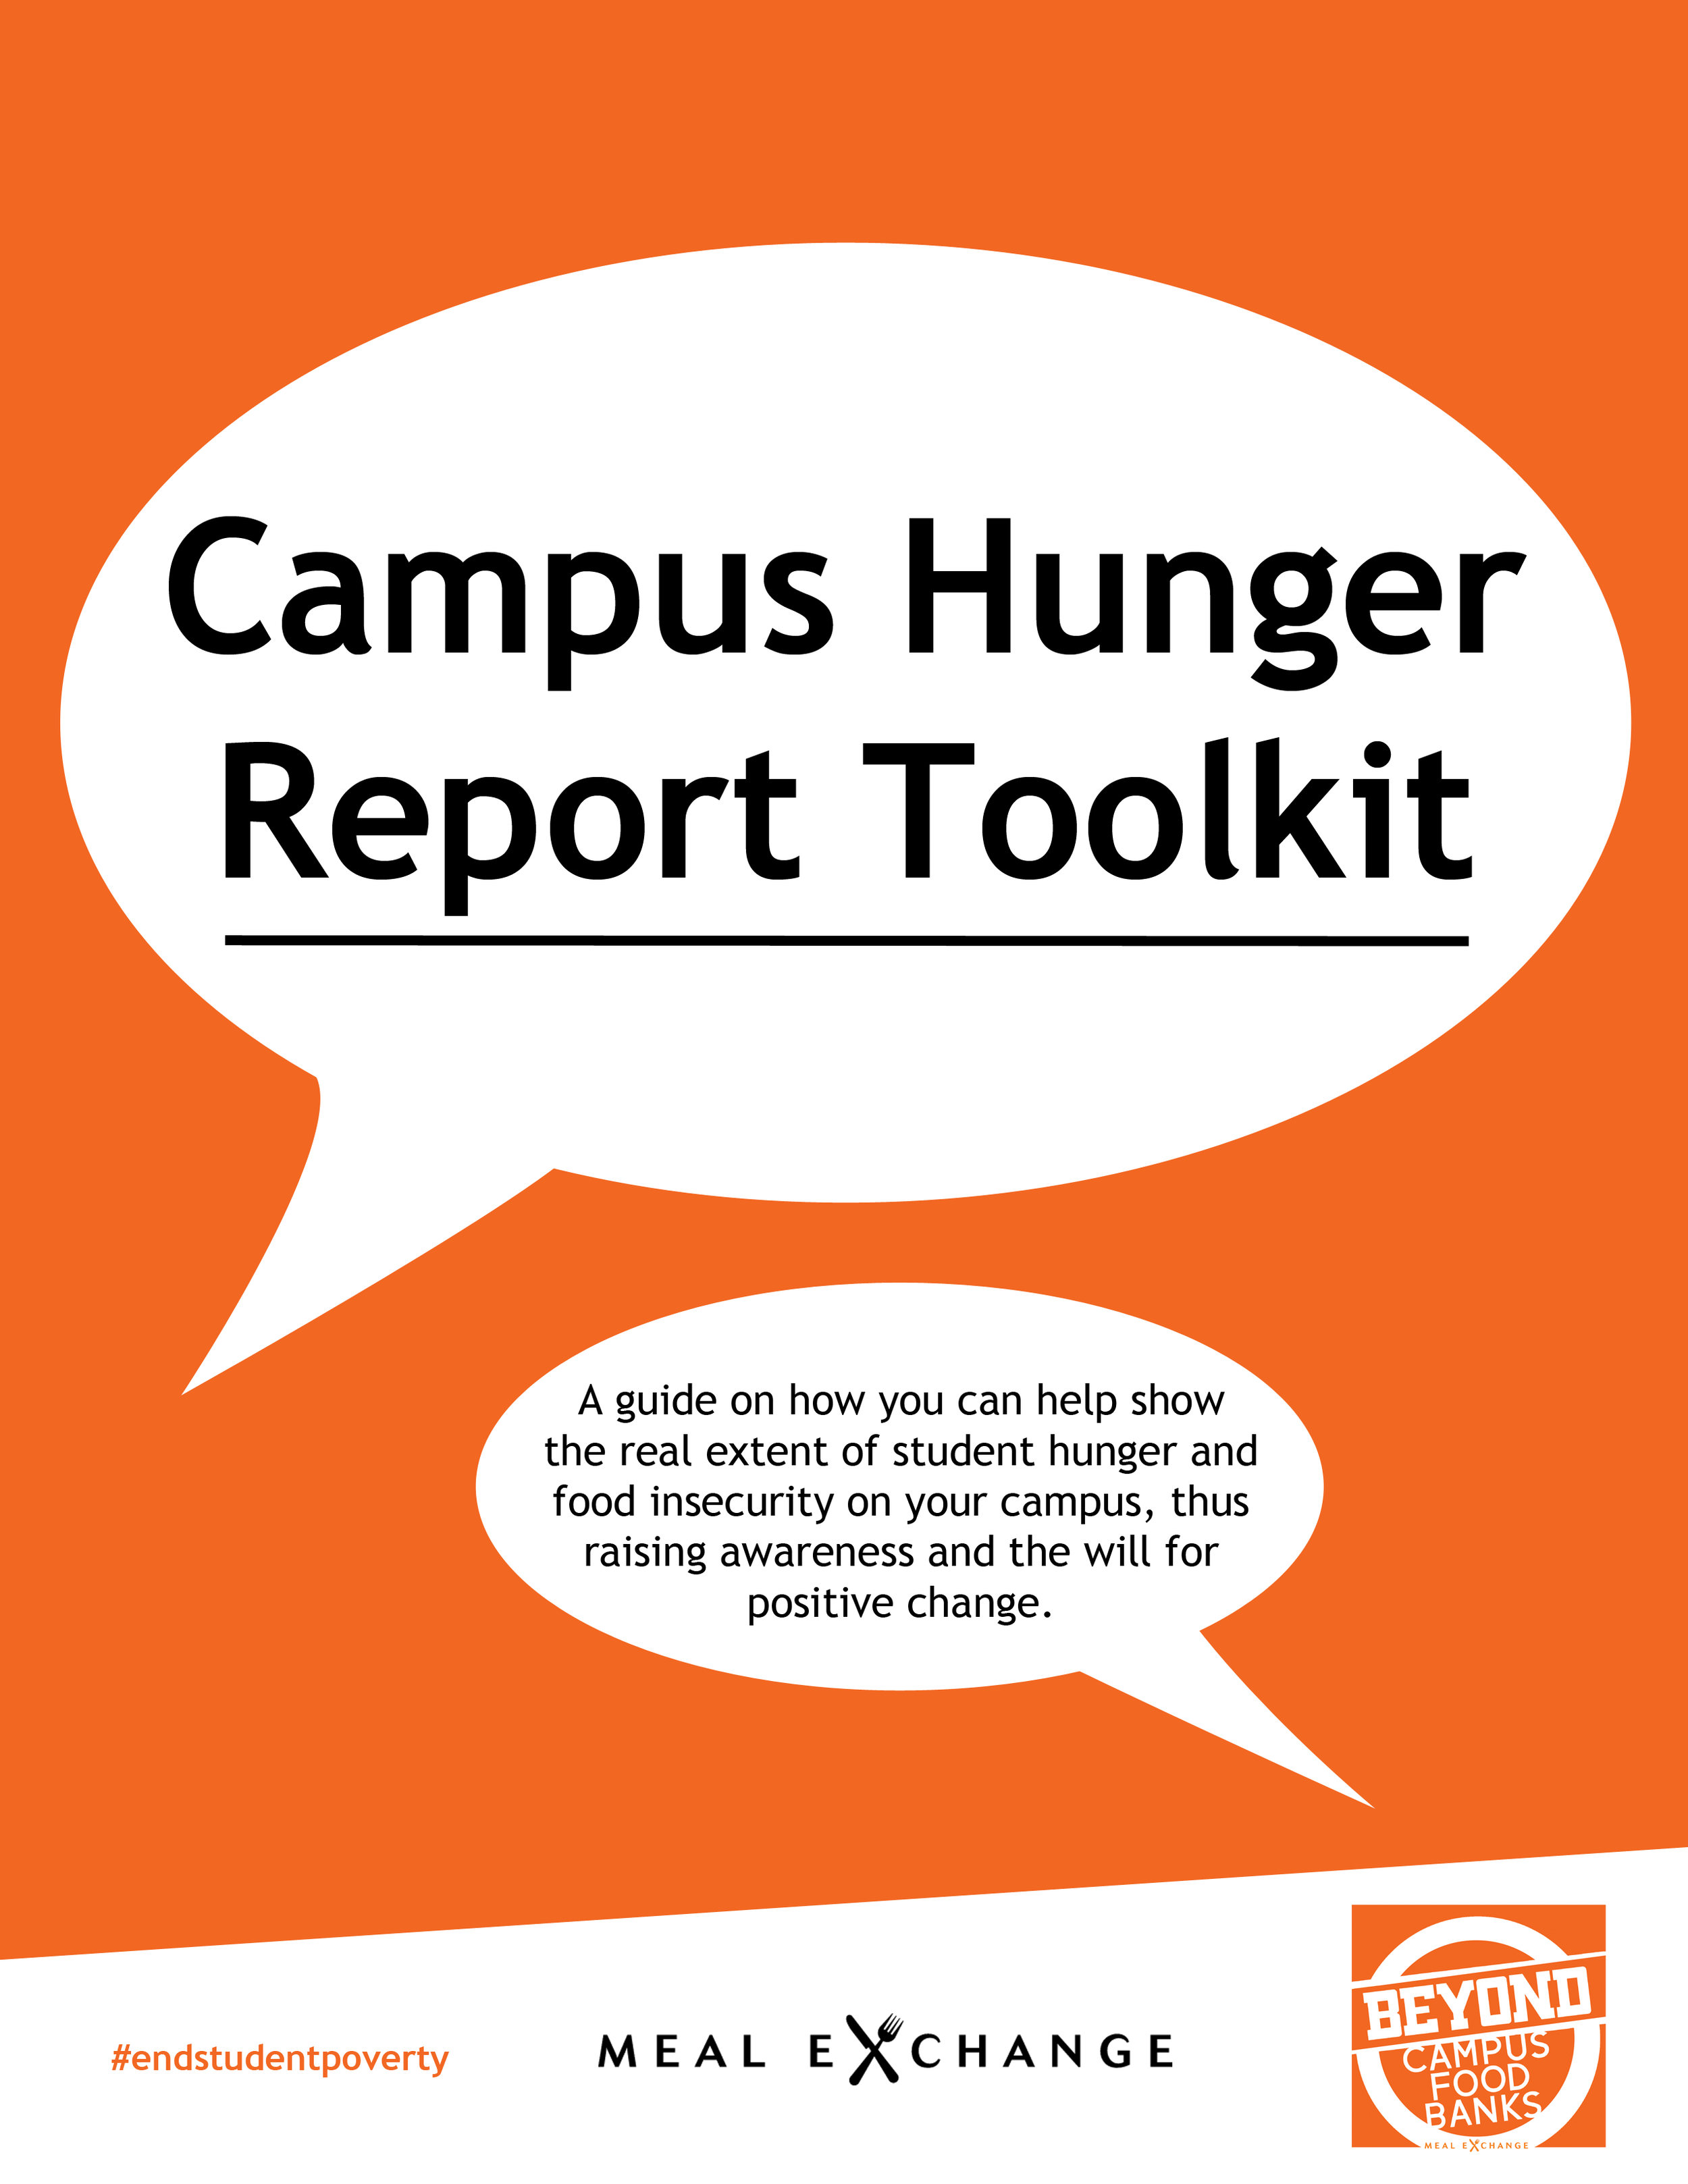 campus hunger toolkit.png